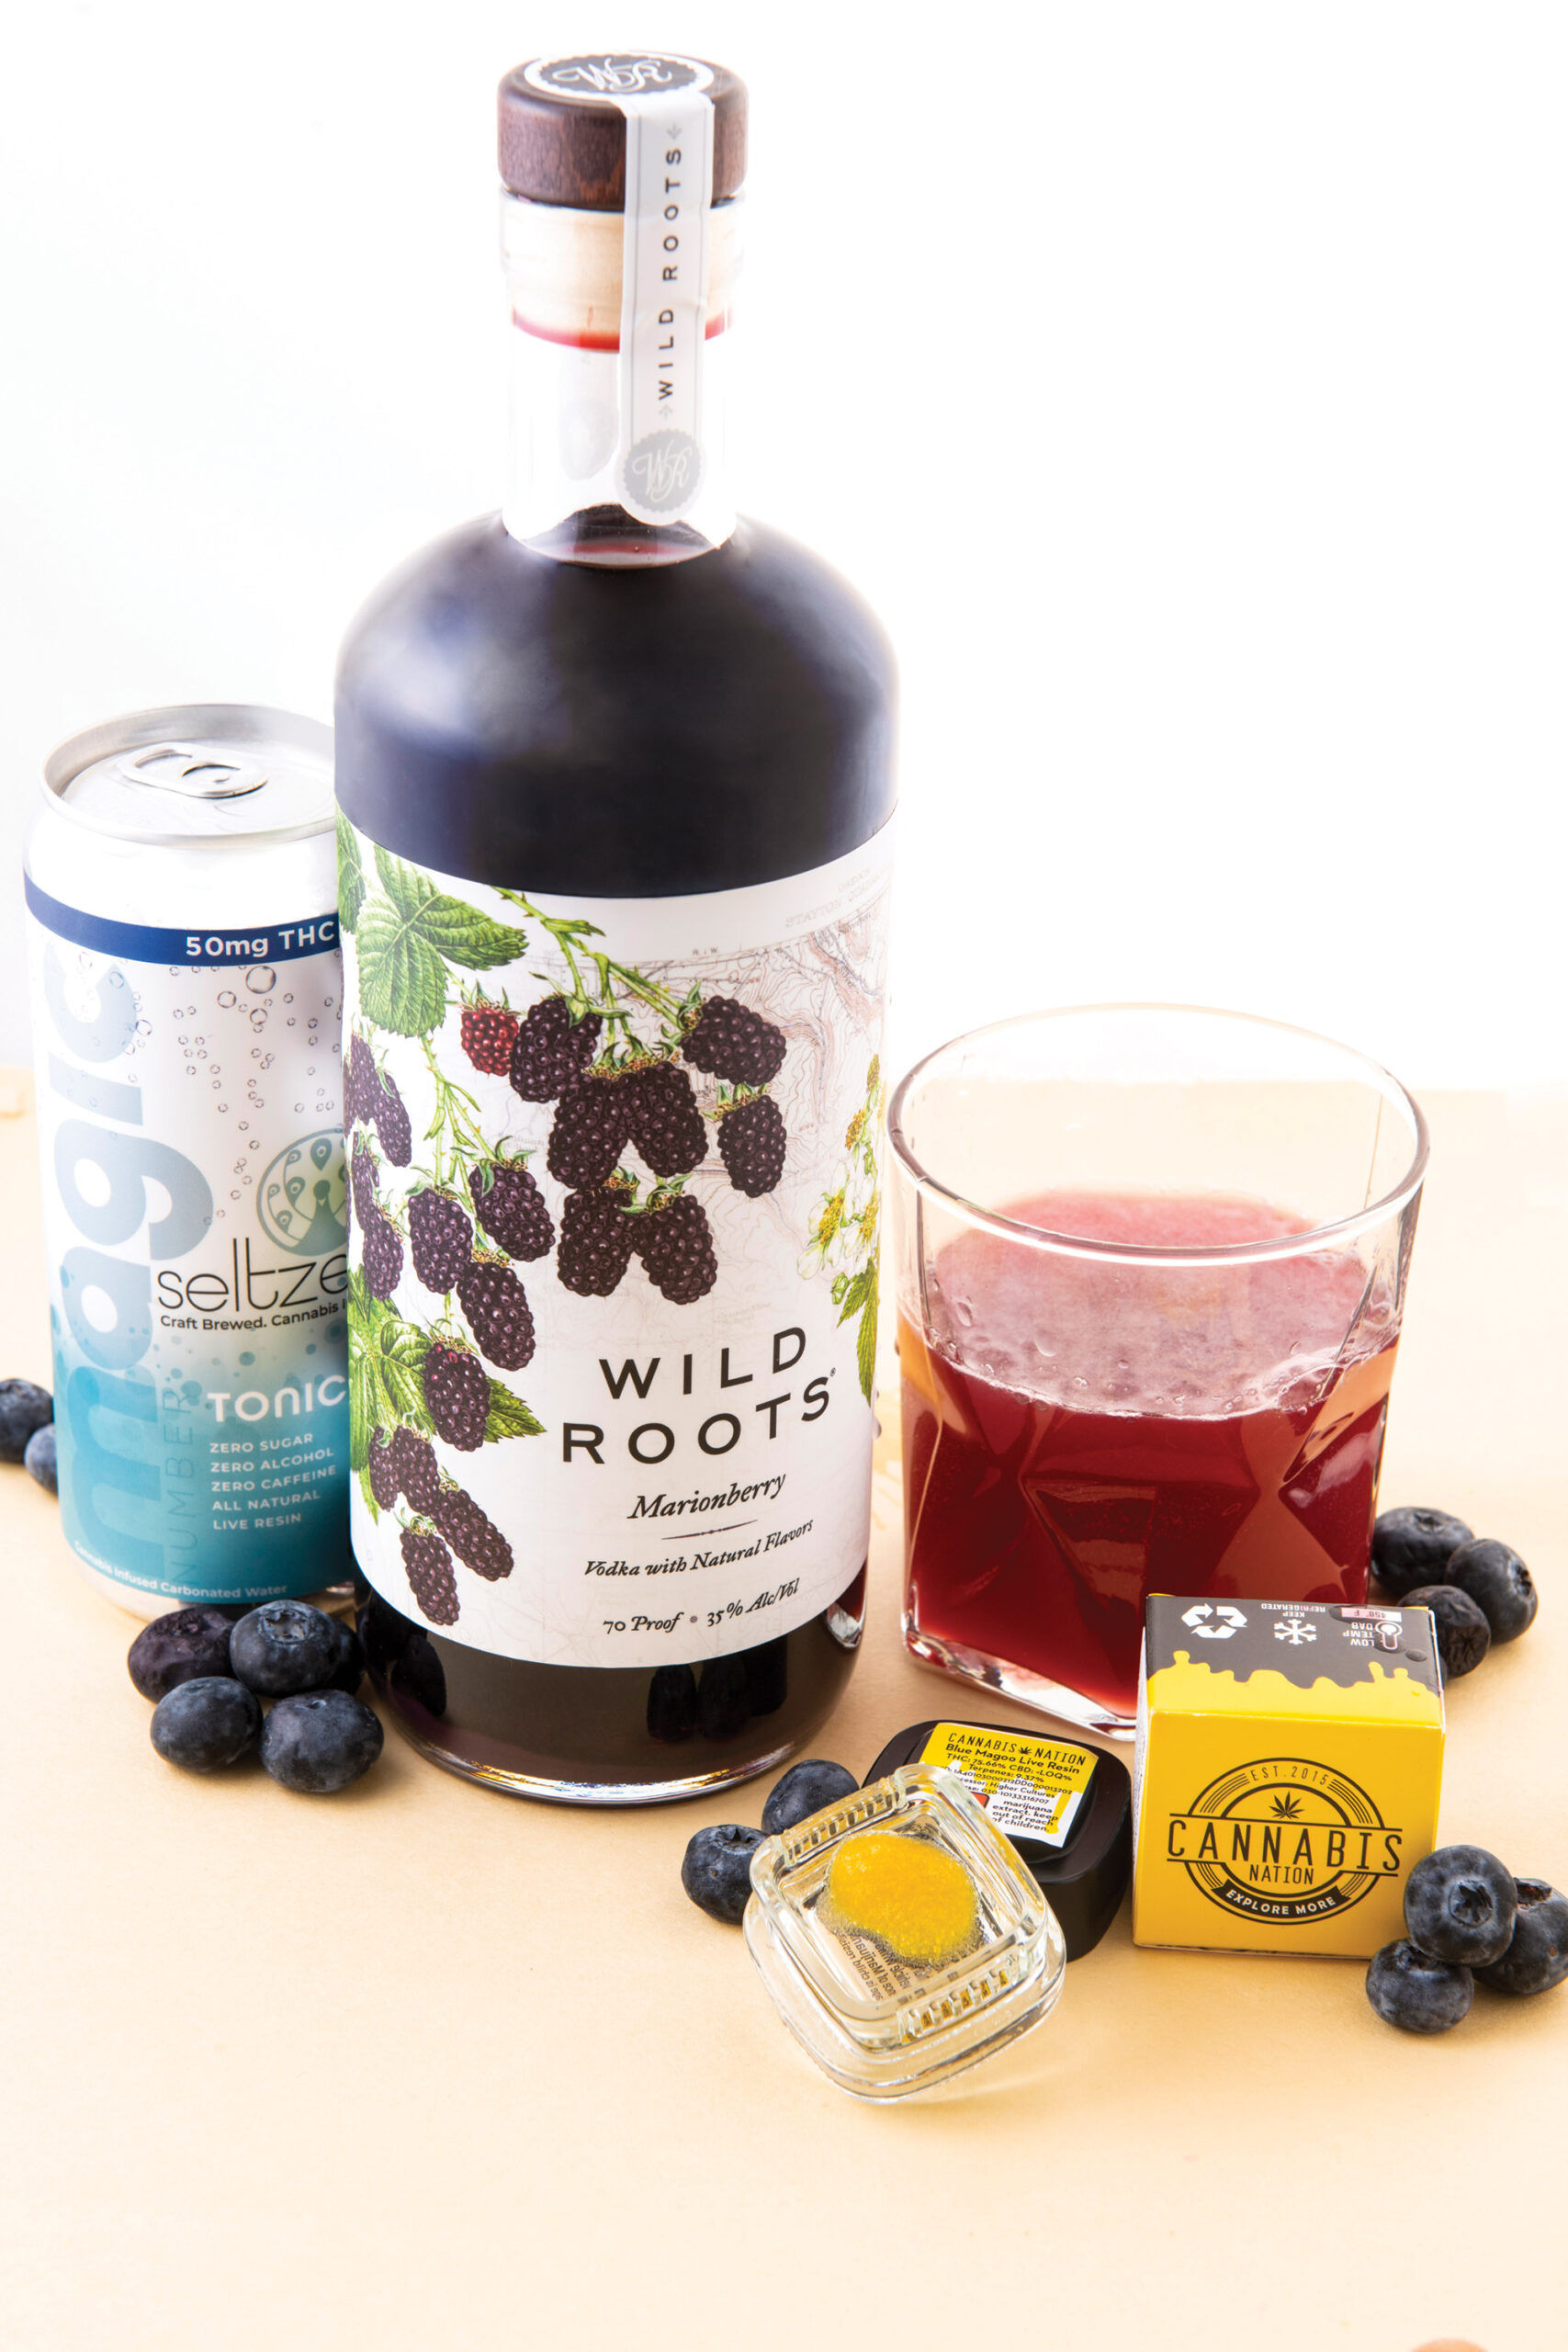 Huckleberry Vodka and Tonic Seltzer with Blue Magoo Live Resin